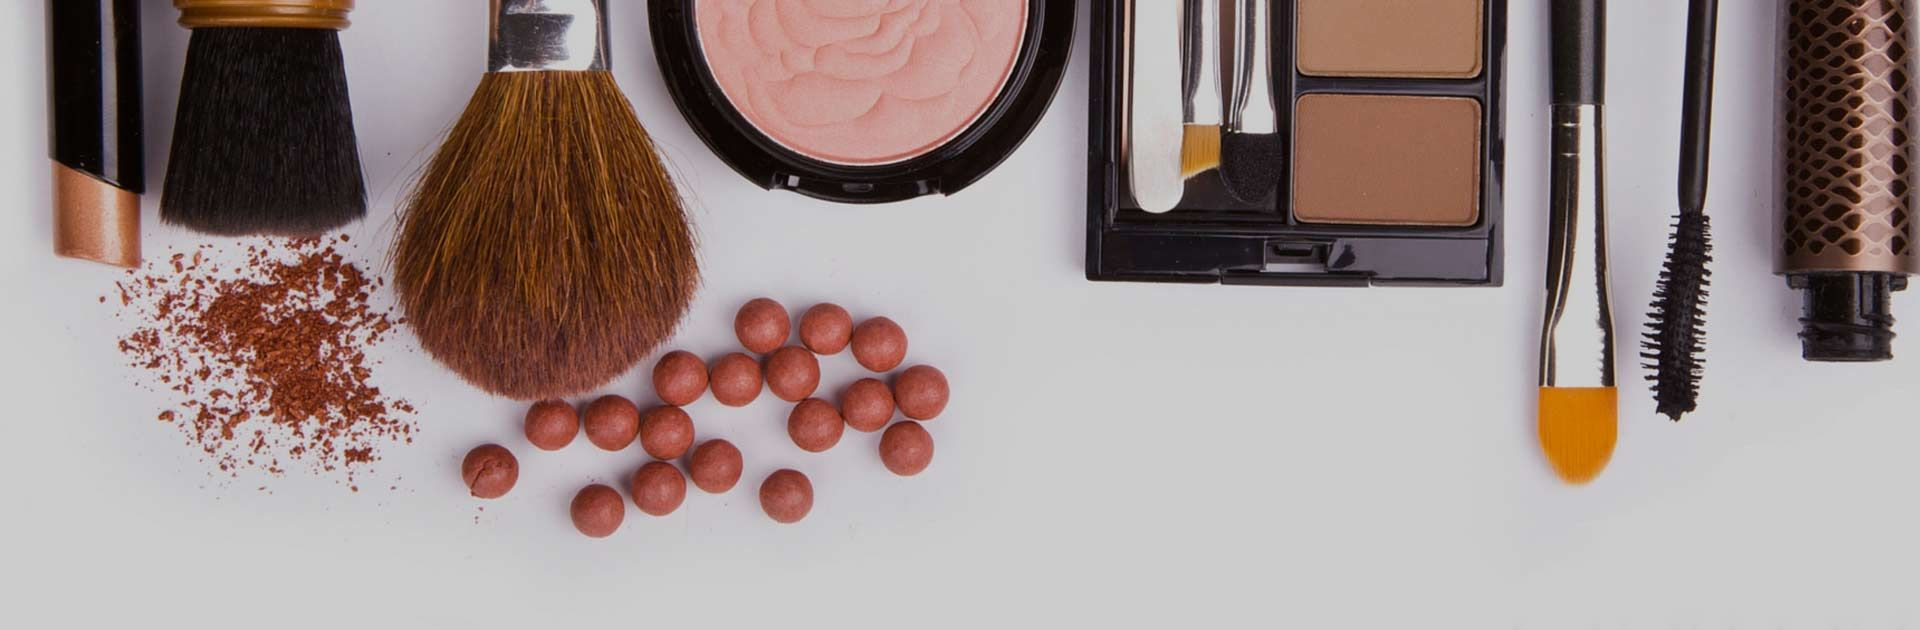 Top Cosmetic Manufacturers in India in 2020 Cosmetics